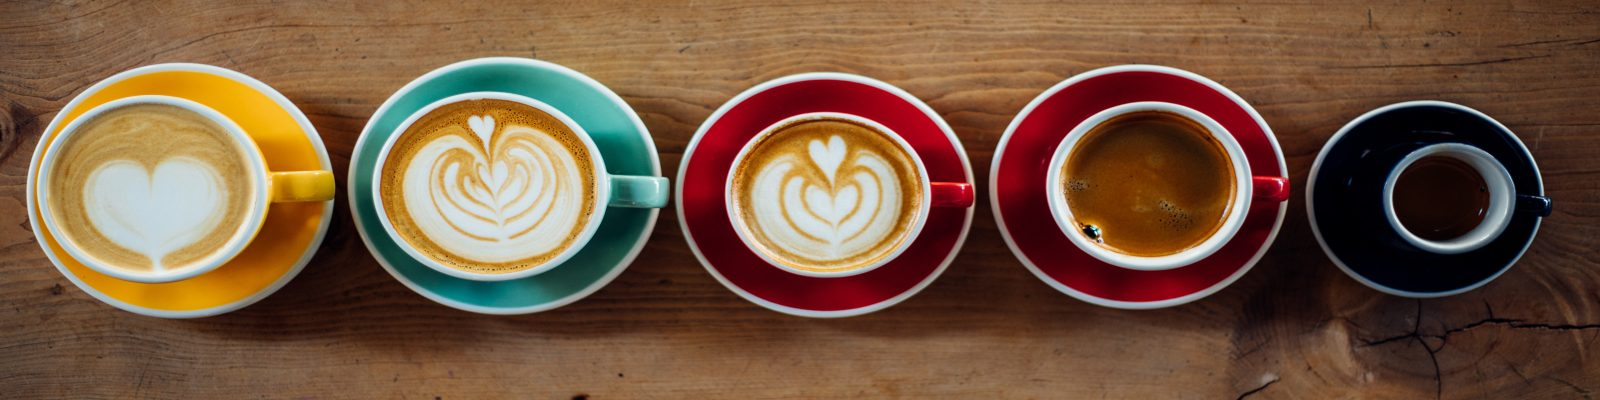 Different coffees in a row